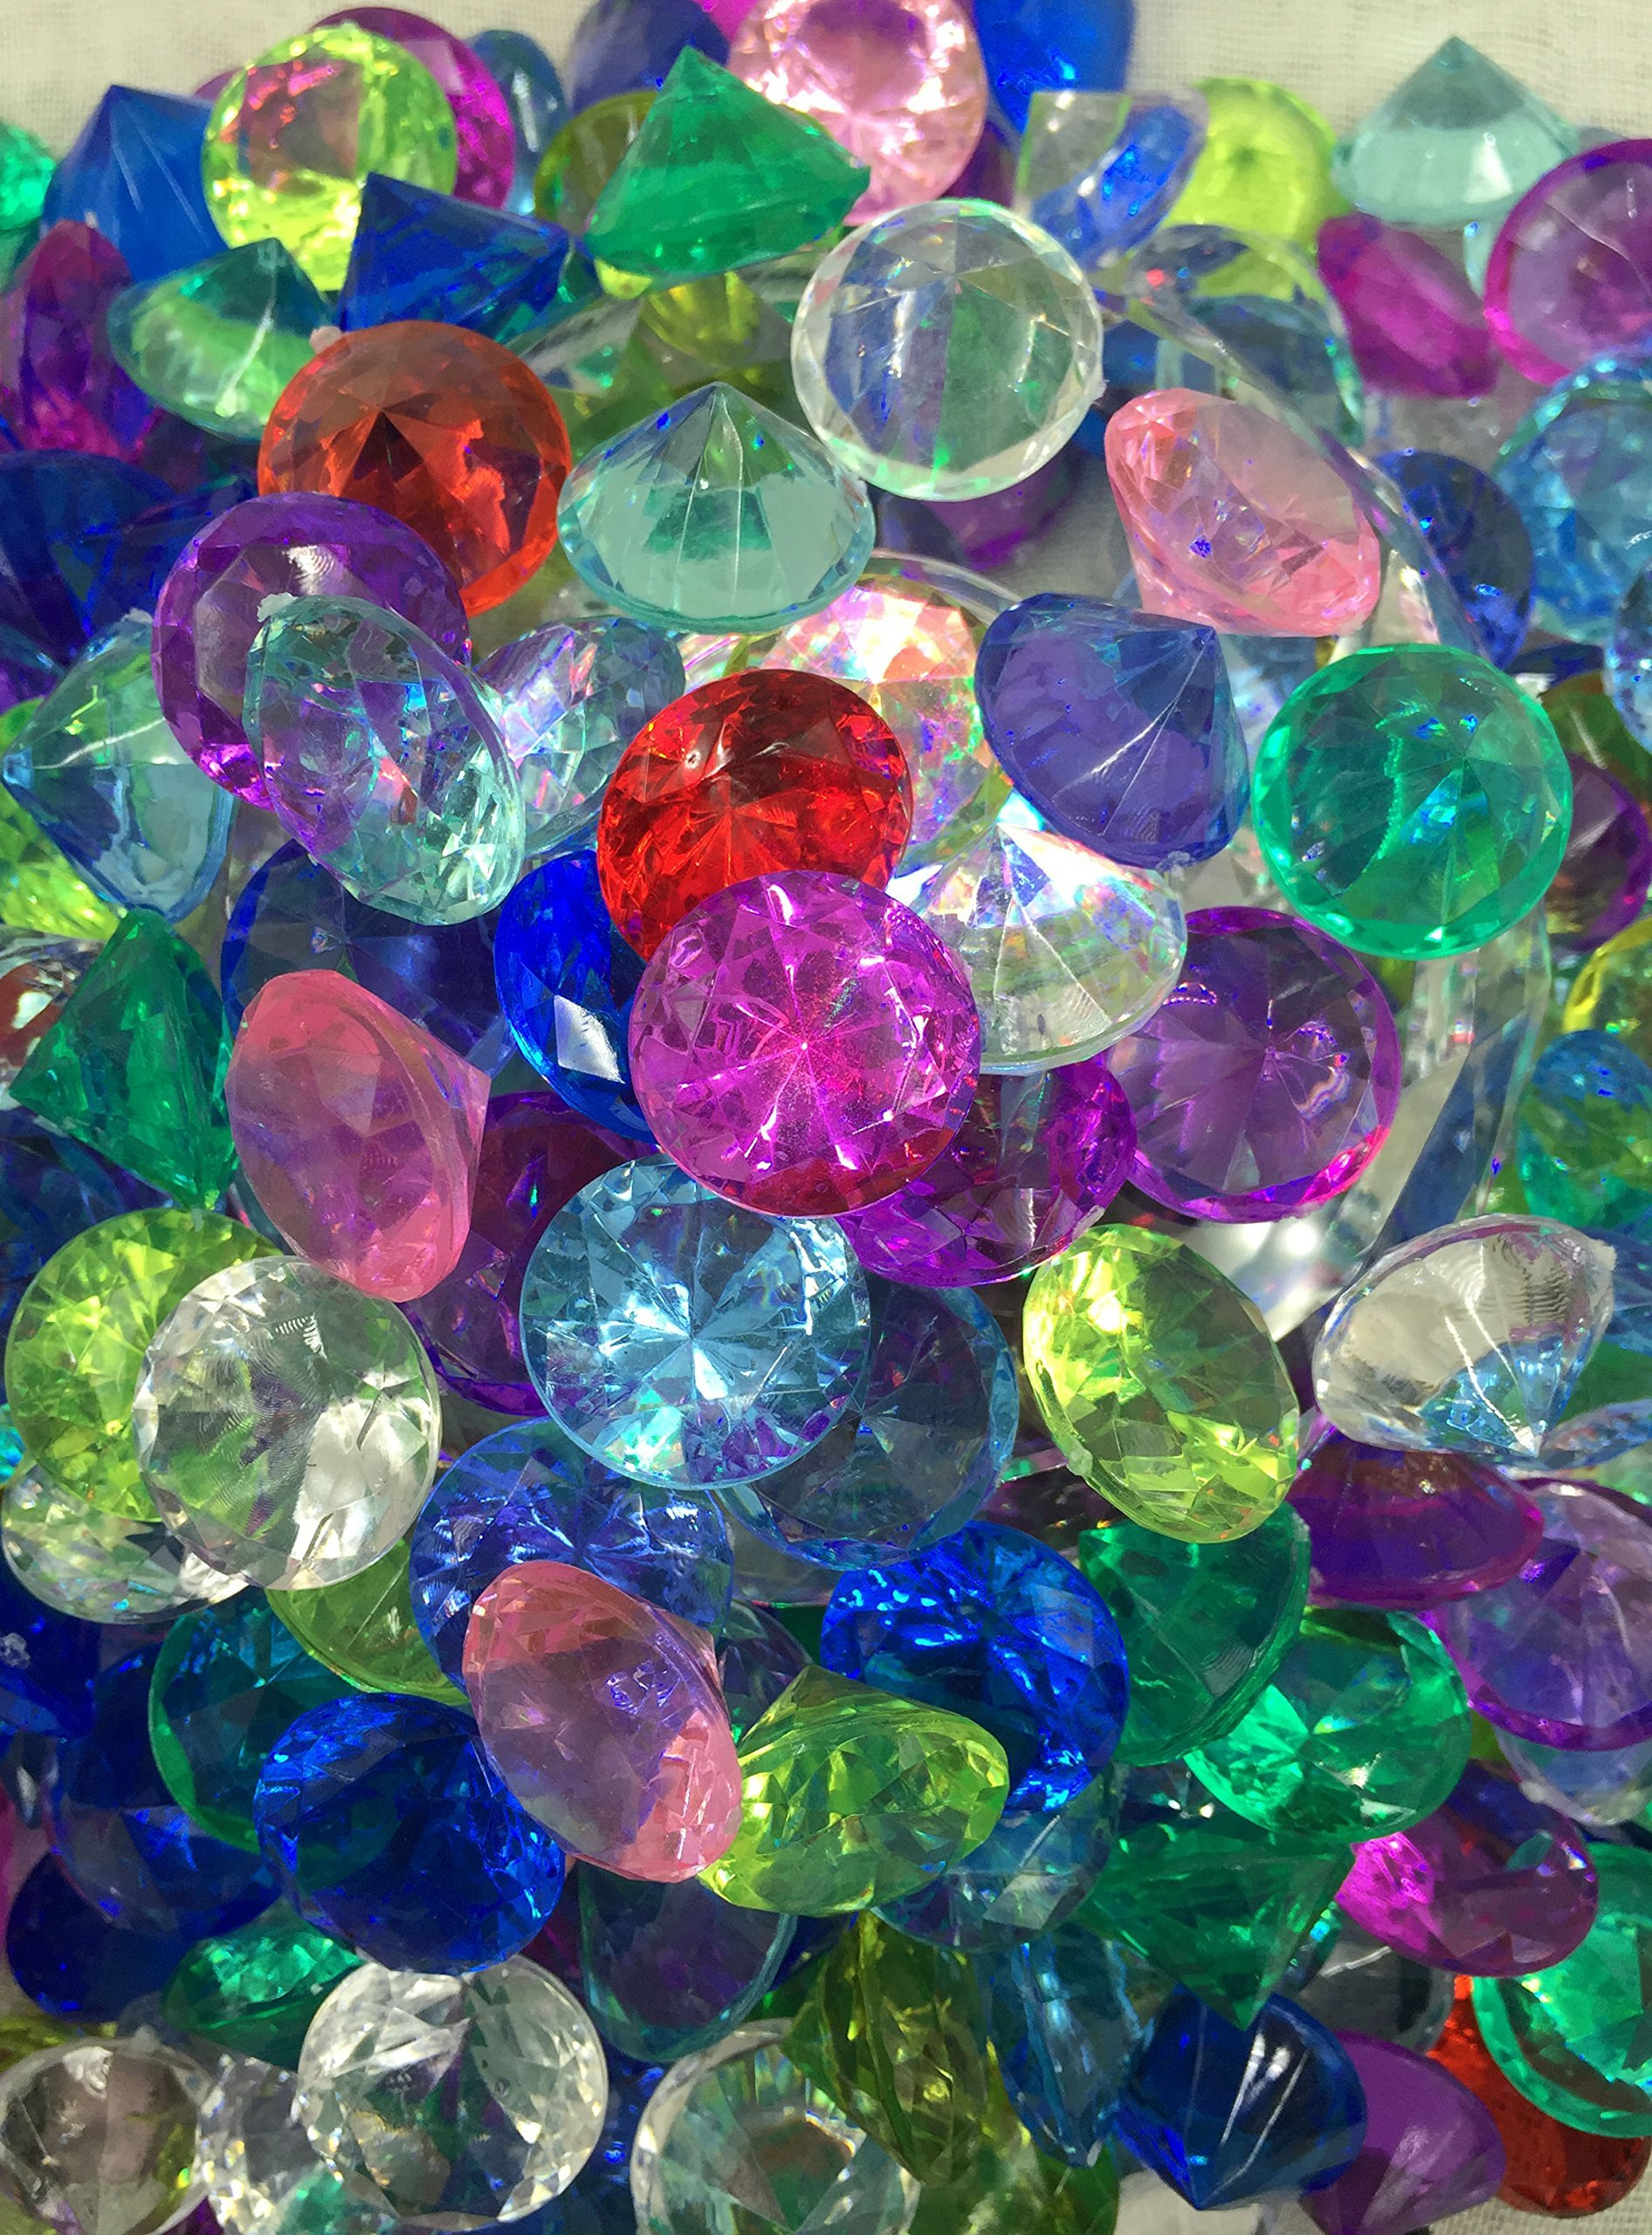 SunRise 480+ Pieces Multi-Colored Acrylic Diamond Shape Pirate Treasure Jewels for Party Decoration,Event,Wedding, Vase Fillers, Arts & Crafts by SunRise